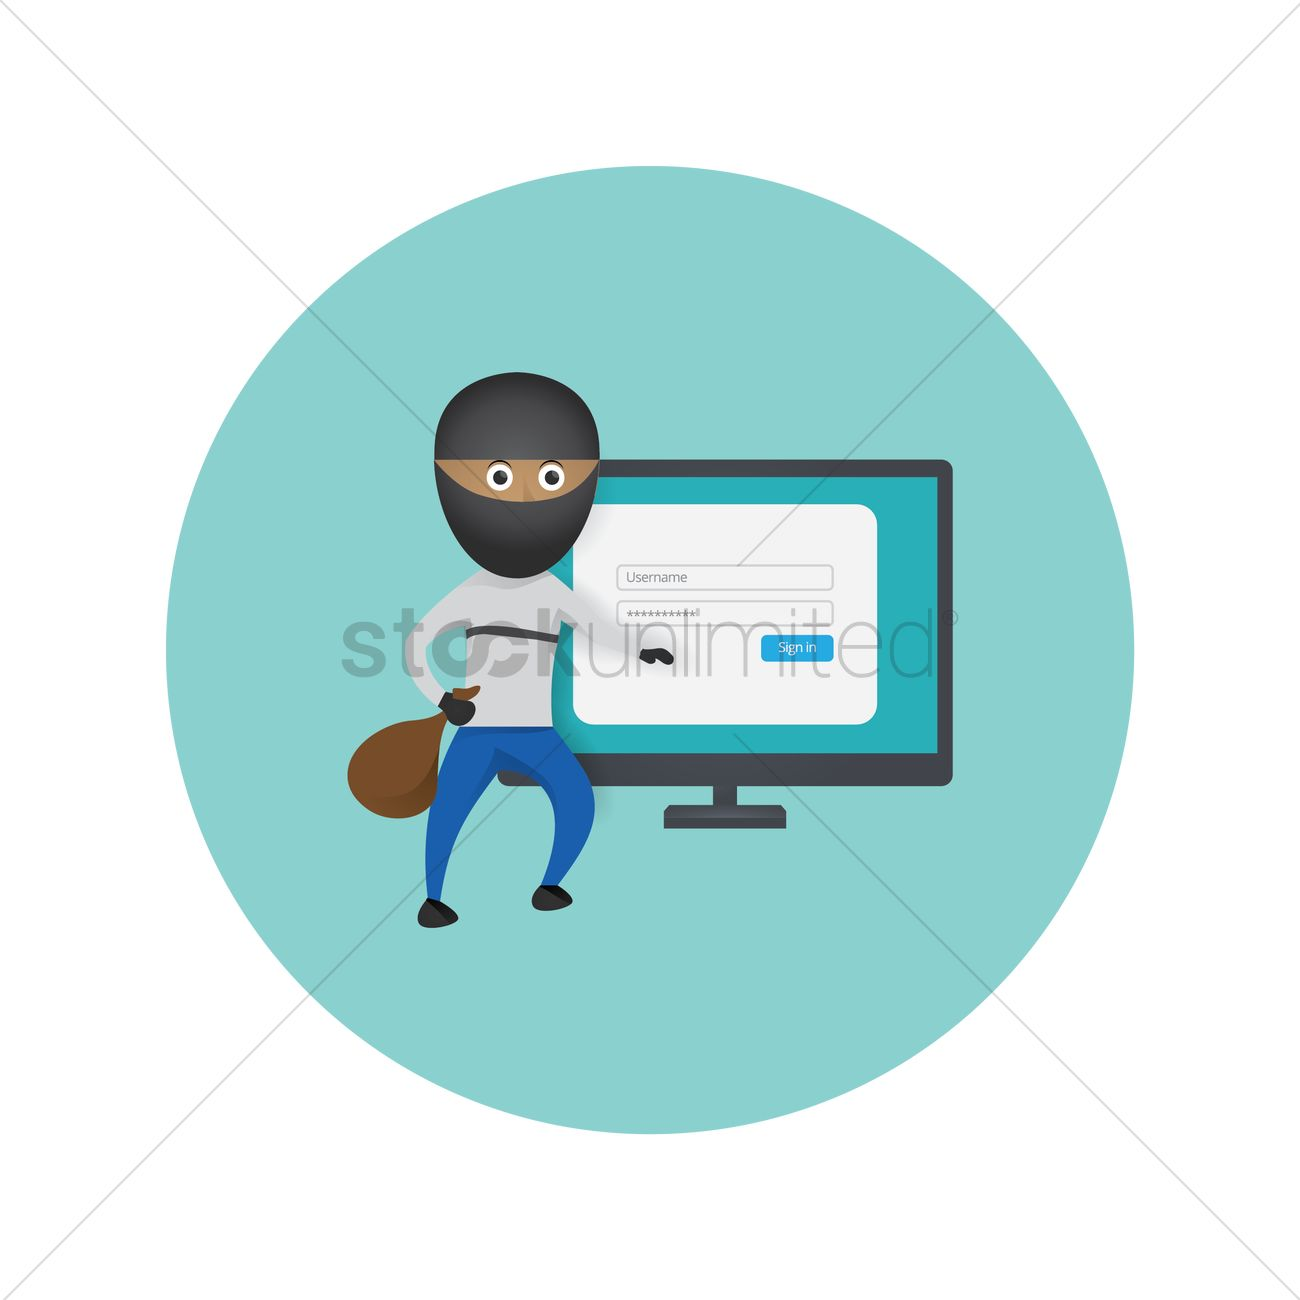 Hacker icon Vector Image - 1602913 | StockUnlimited